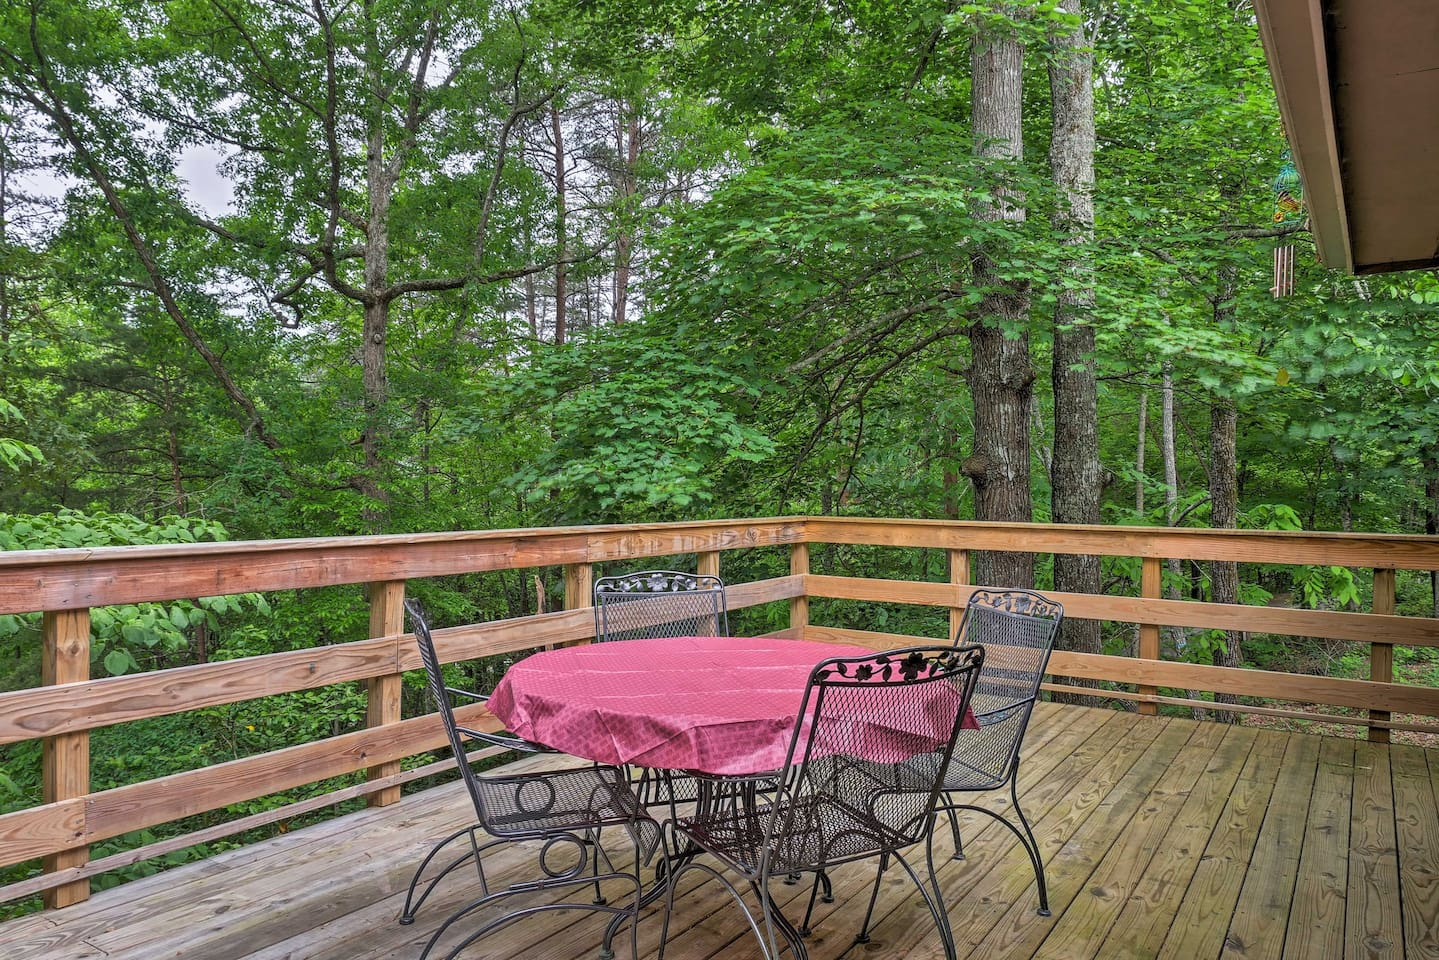 Plan a relaxing family vacation to this Hiawassee vacation rental cottage!